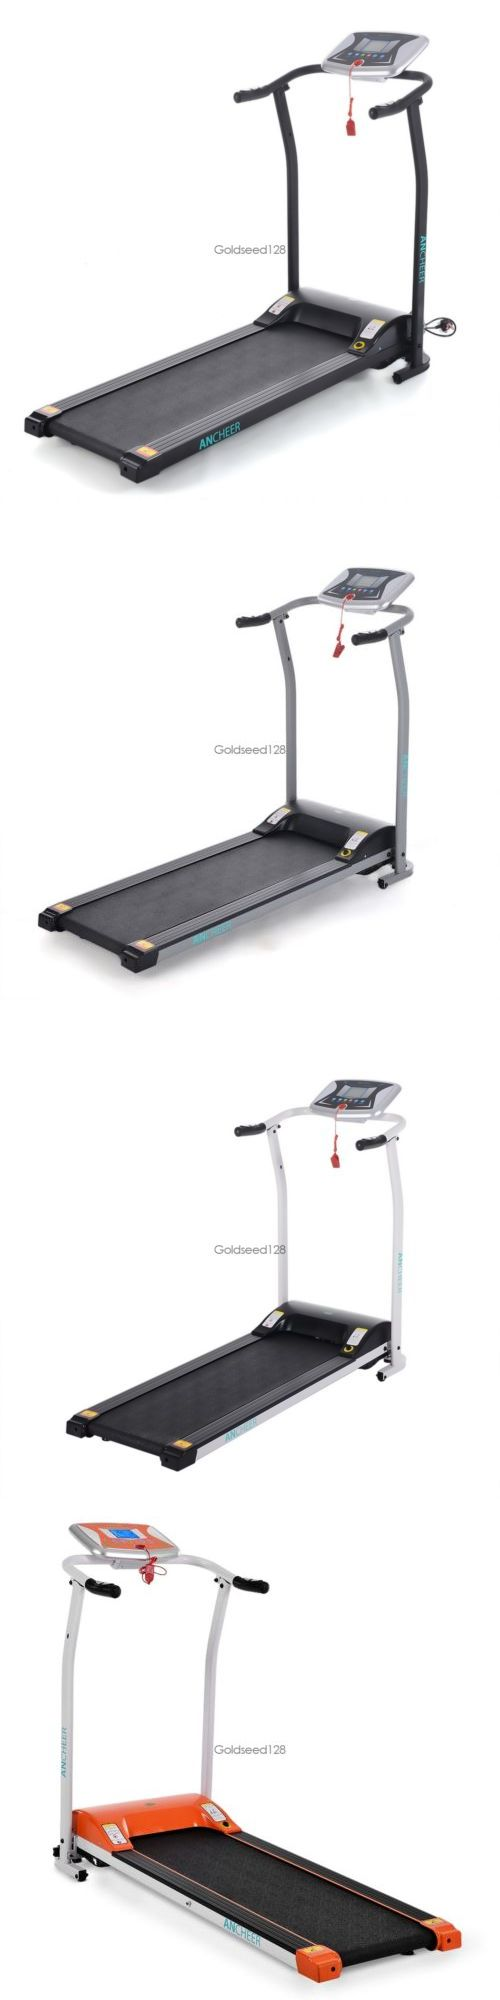 Treadmills 15280: Ancheer S8400 Folding Electric Running Training Fitness Treadmill Home Gs8d01 -> BUY IT NOW ONLY: $190.1 on eBay!